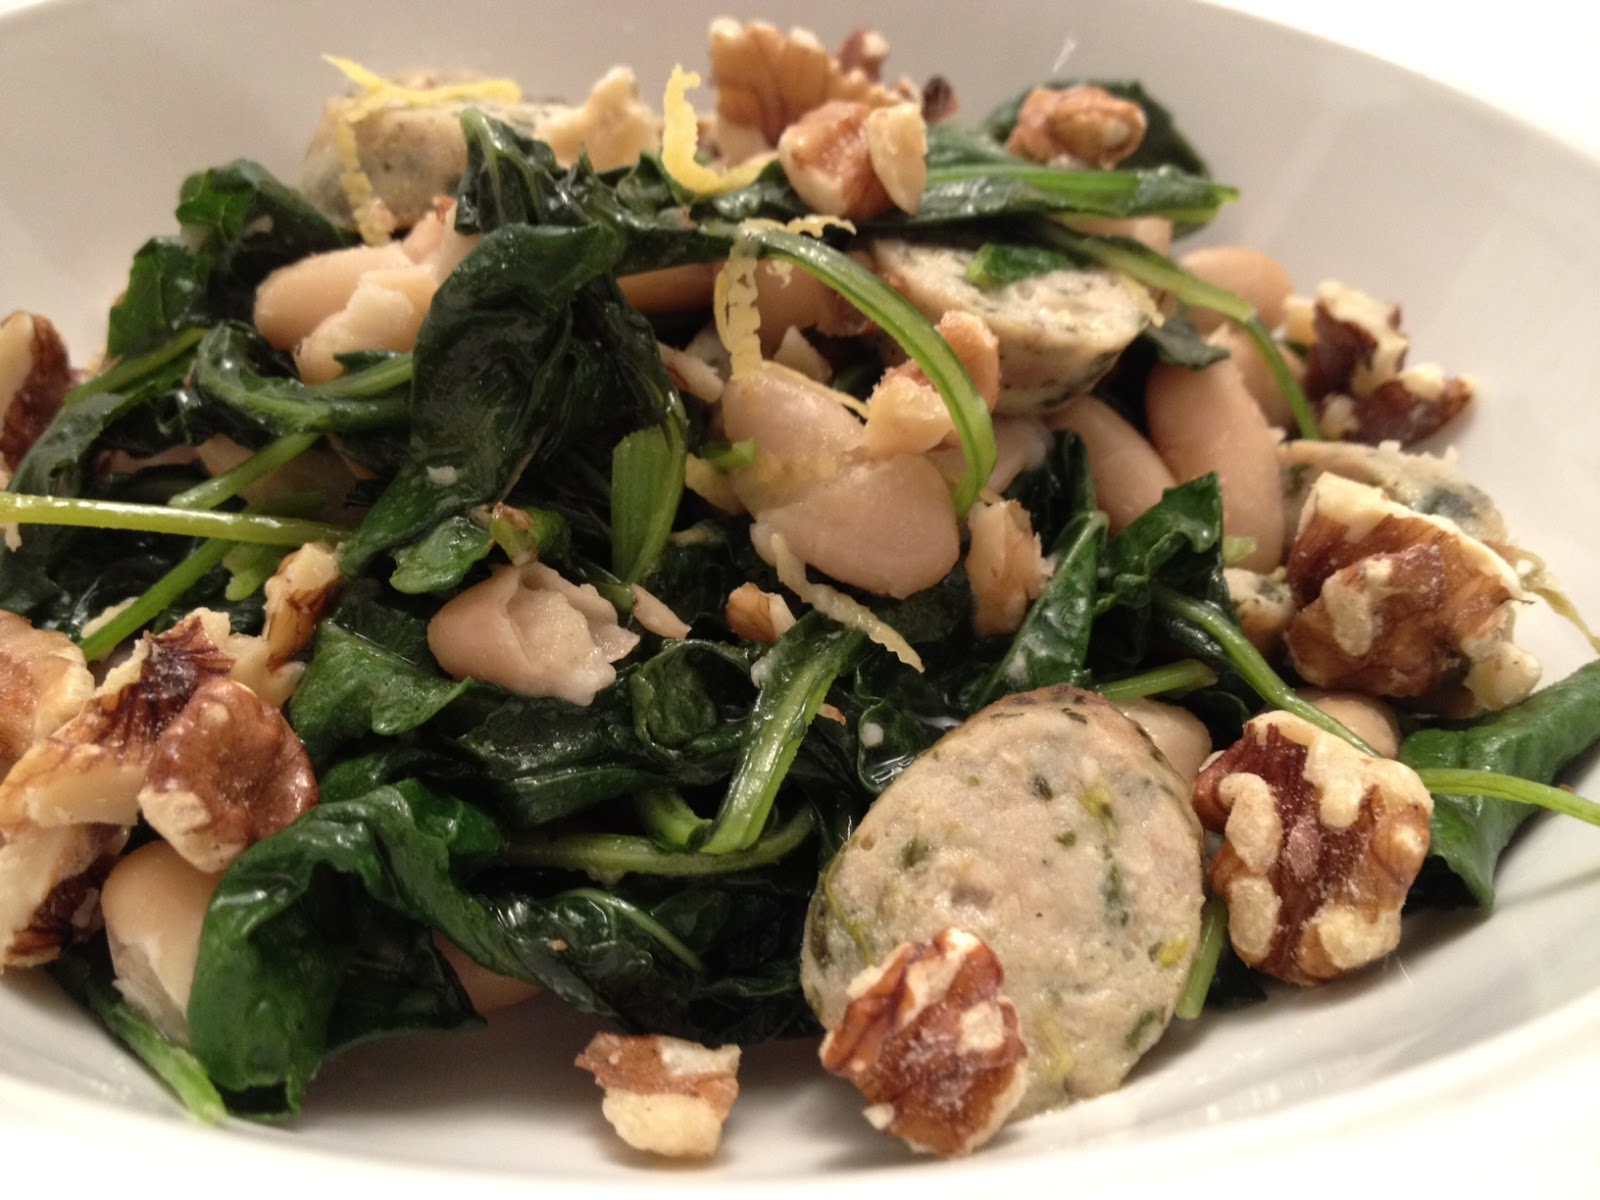 The Full Plate Blog: lemony kale, sausage and white beans